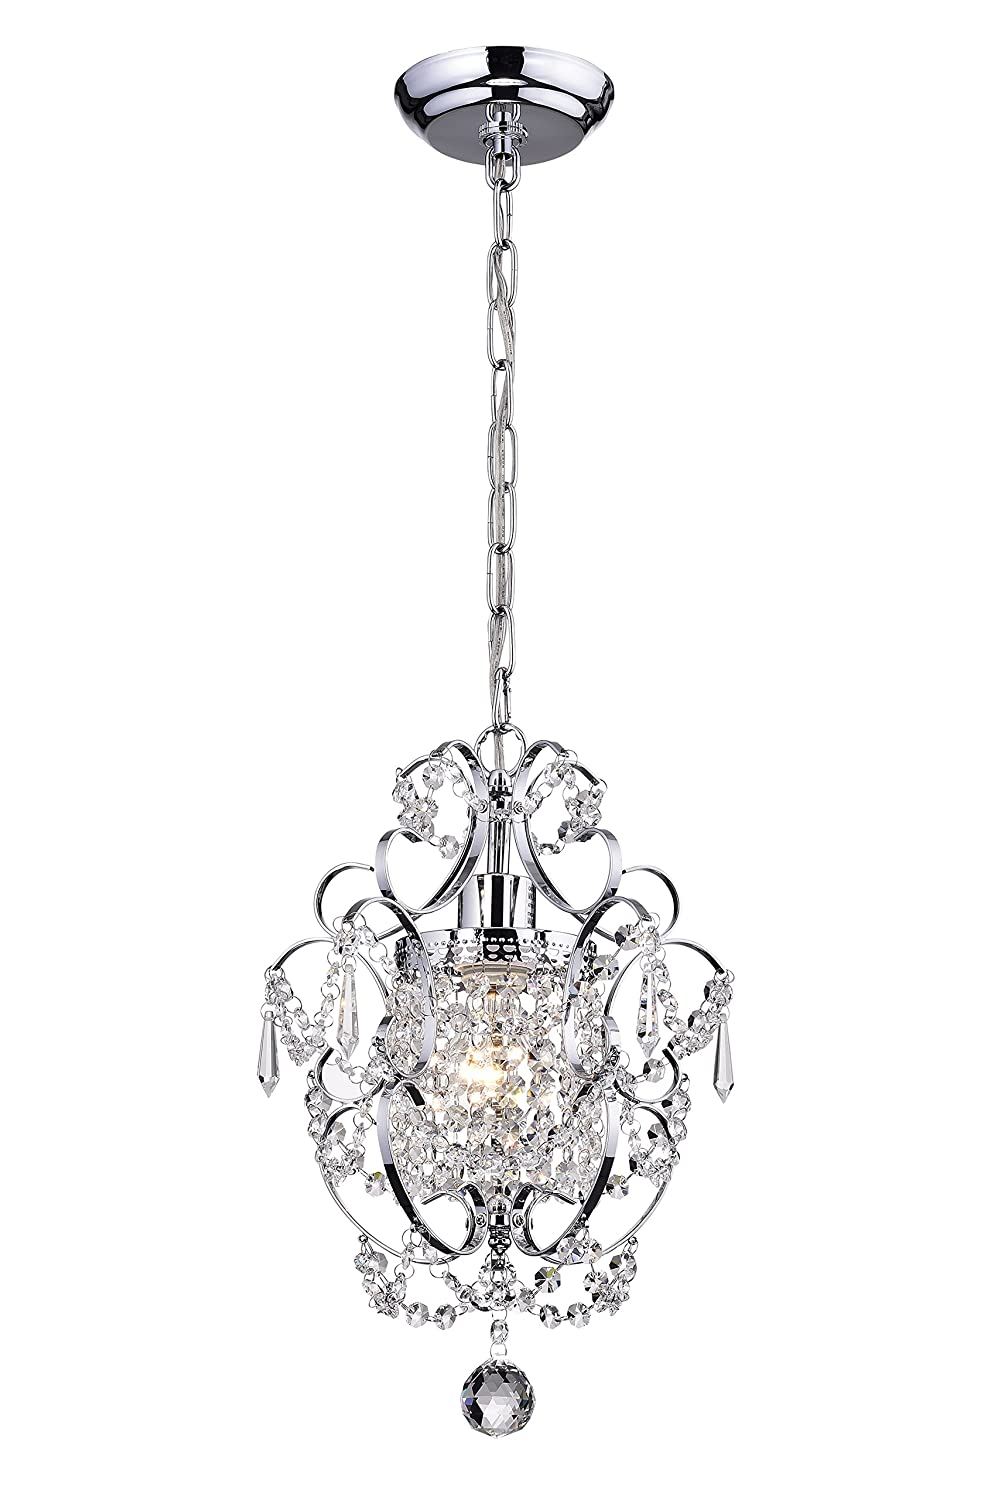 Amorette Chrome Finish Mini Chandelier Wrought Iron Ceiling Light Fixture Wiring As Well A Wires Besides Electrical